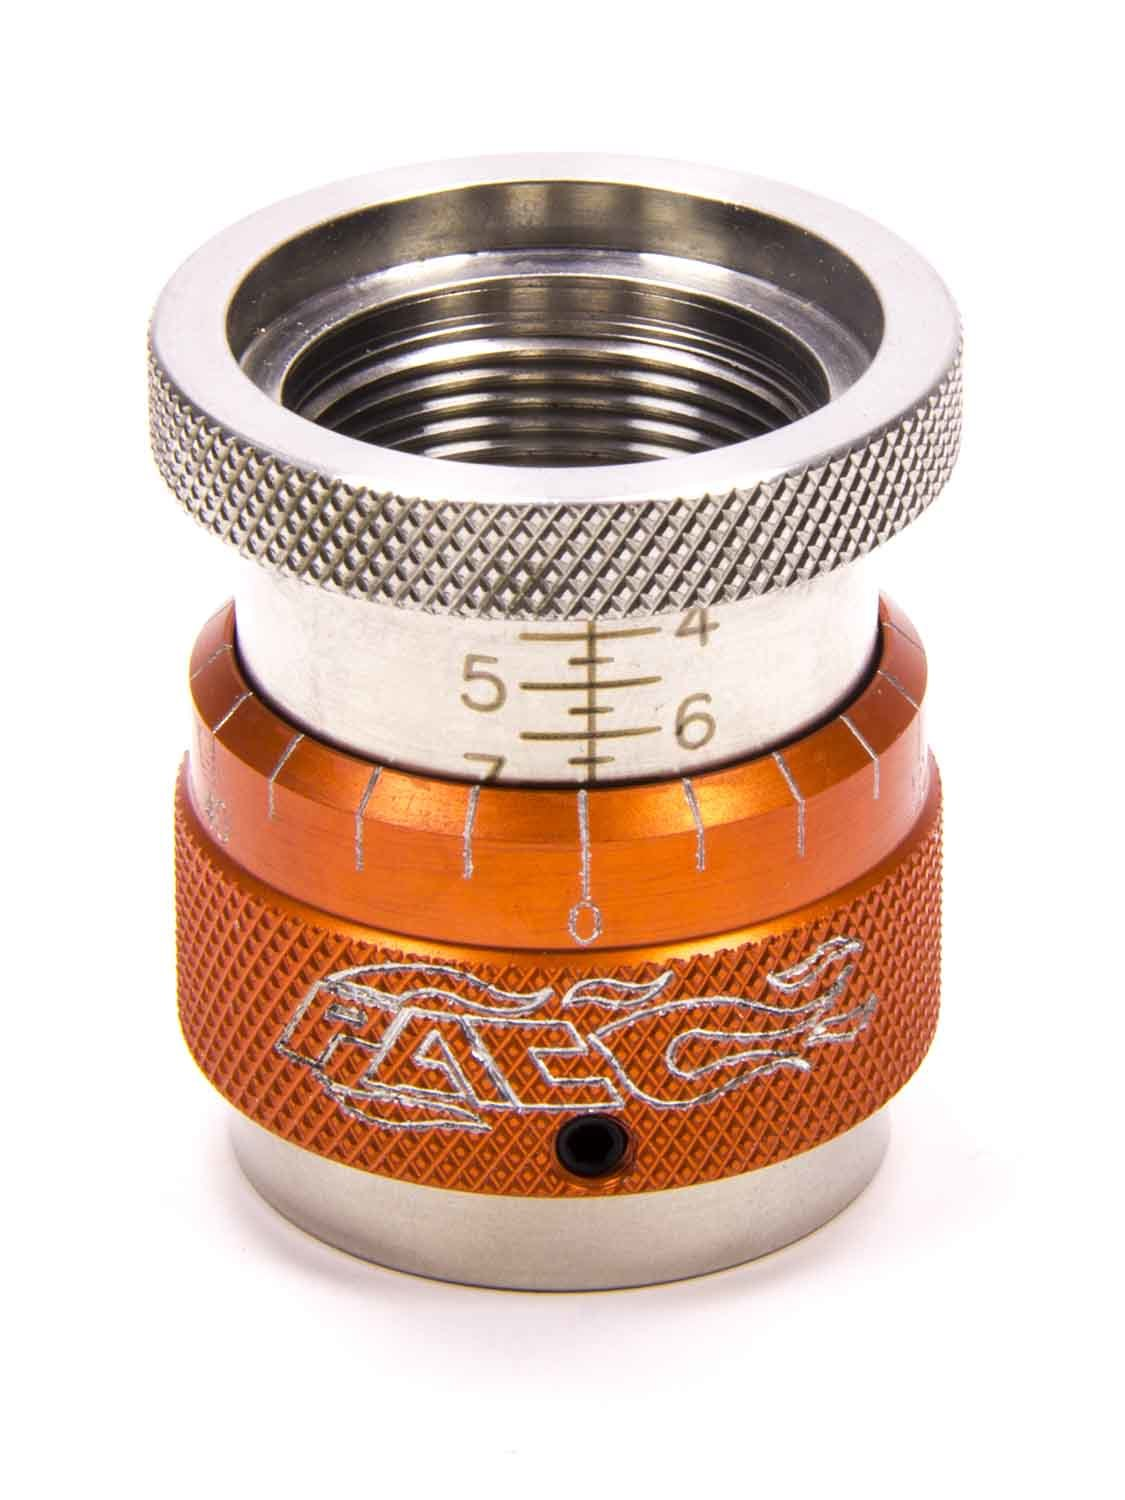 PAC Racing Springs PAC-T903 Valve Spring Height Gauge, 1.400-1.900 in Range, 1.200 in ID, 0.050 in Per Turn, Orange Anodized, Each